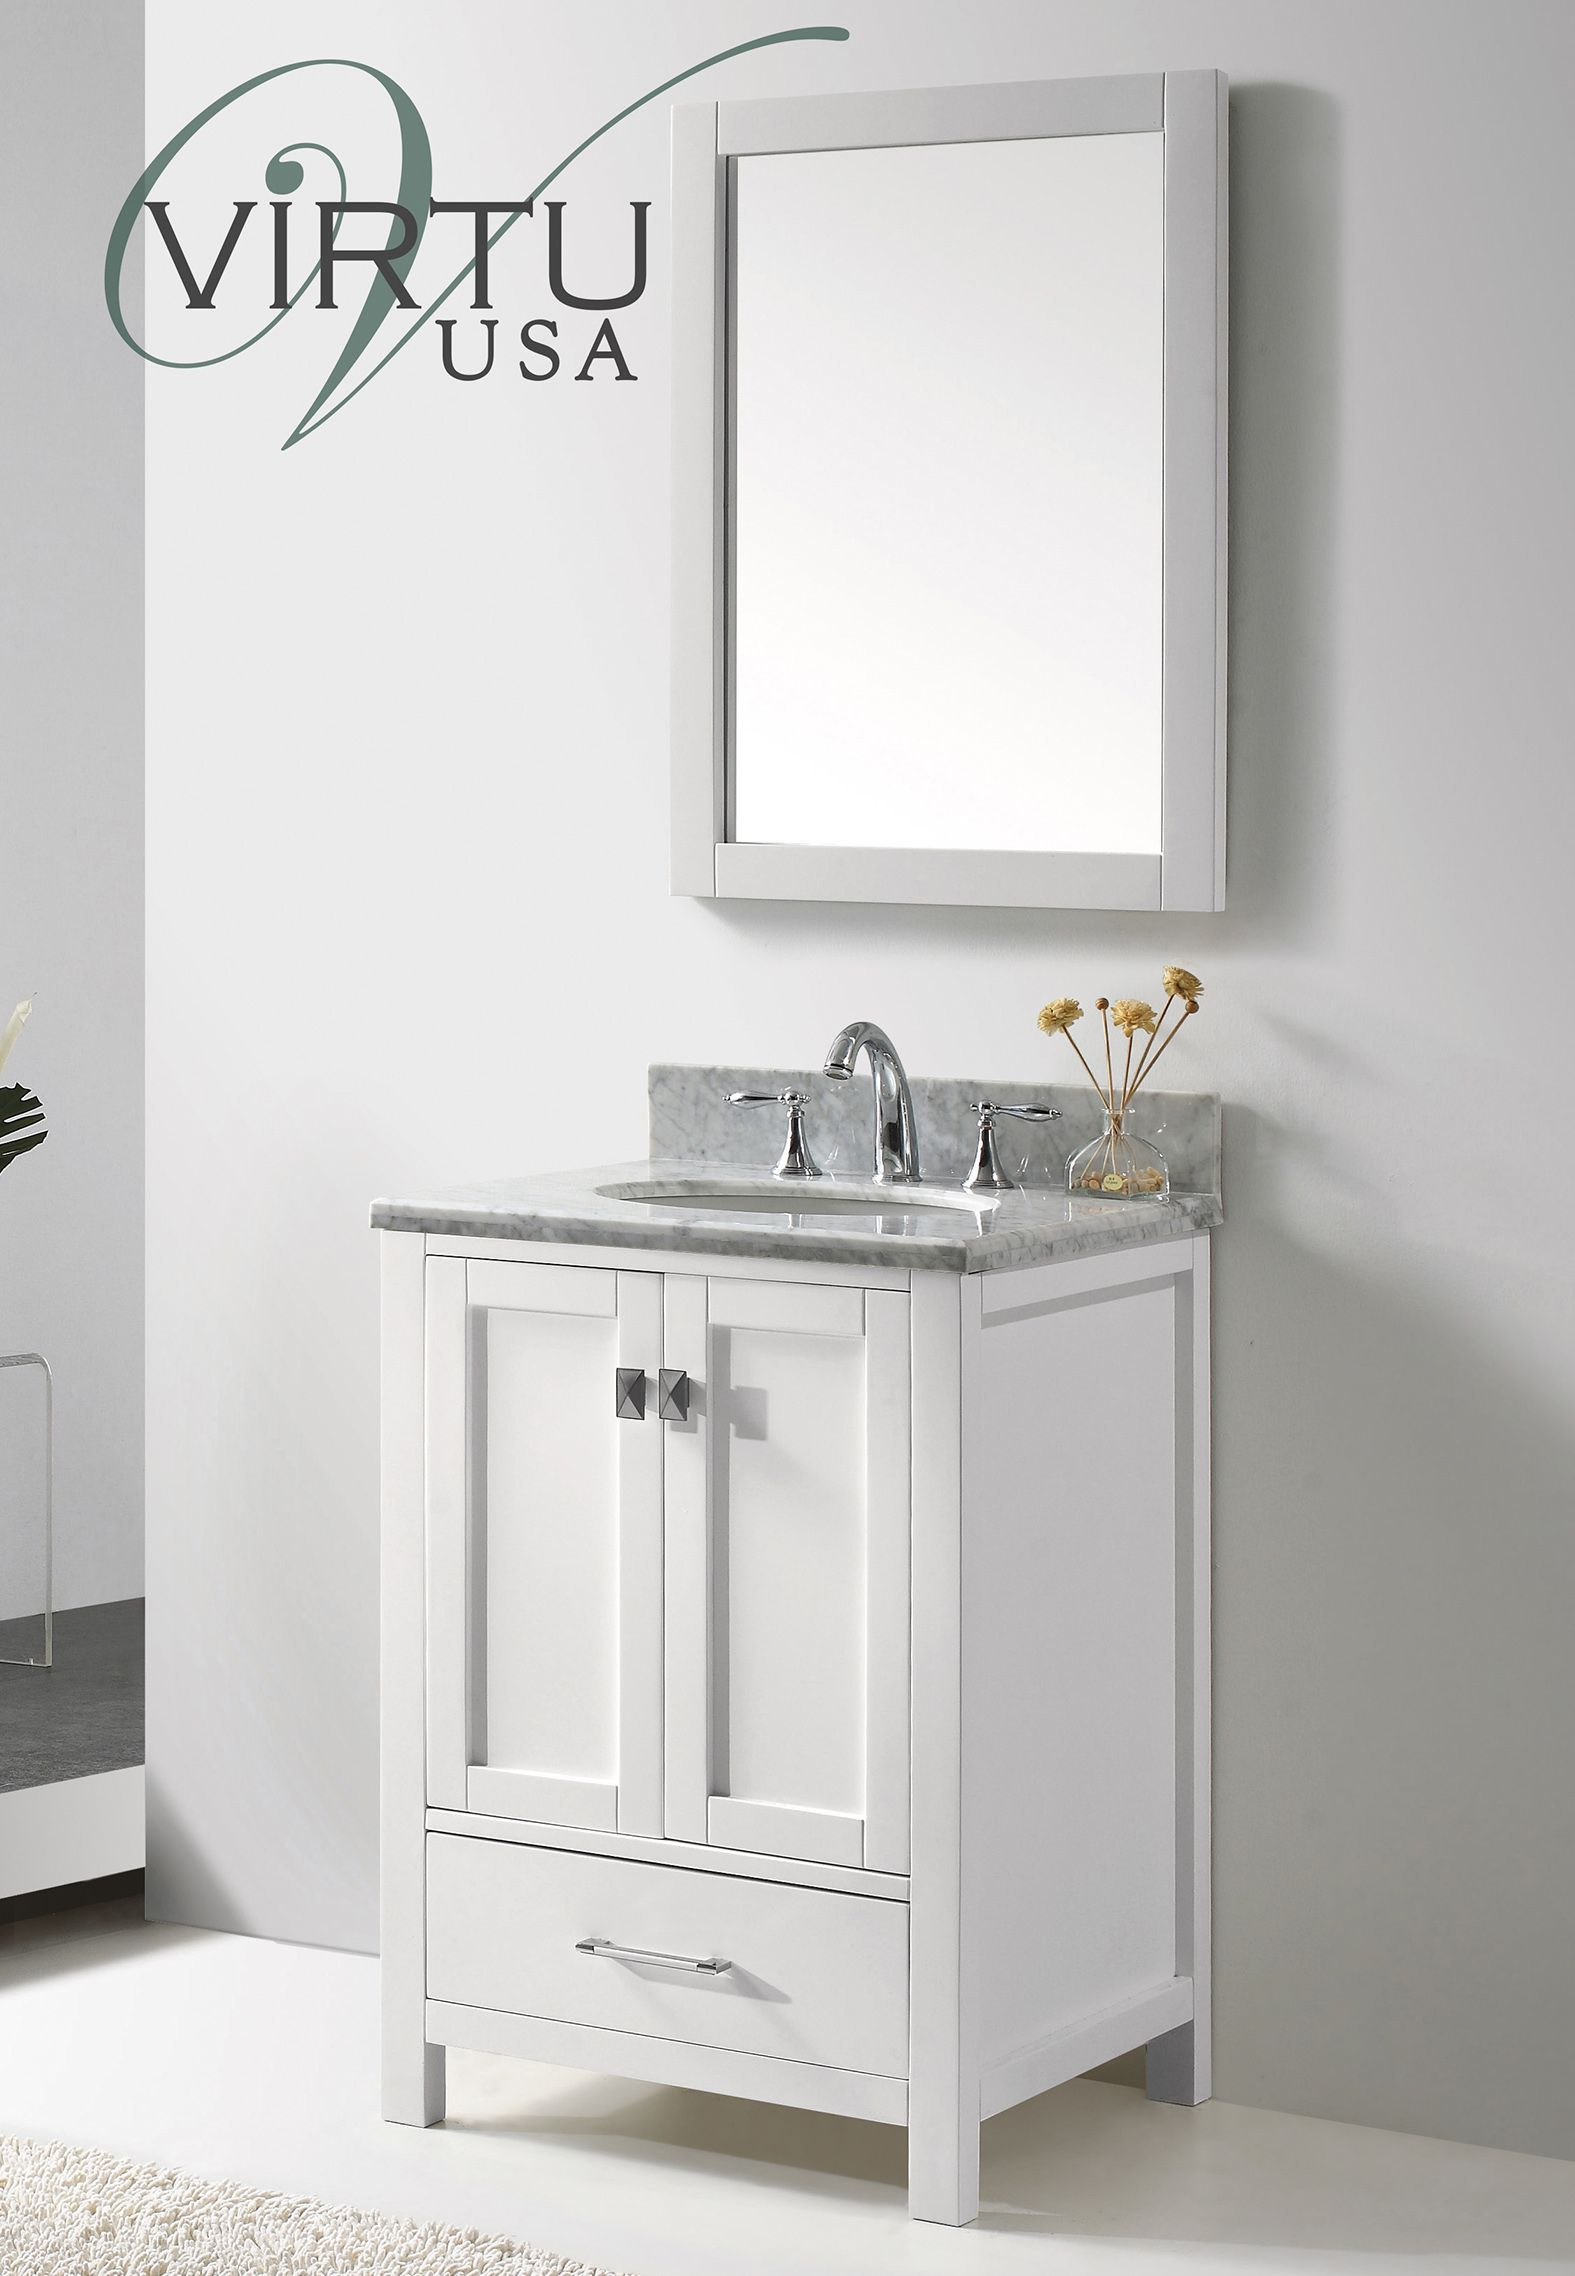 24 Inch Bathroom Vanities Cheap Bathroom Vanities Small Bathroom Vanities White Vanity Bathroom